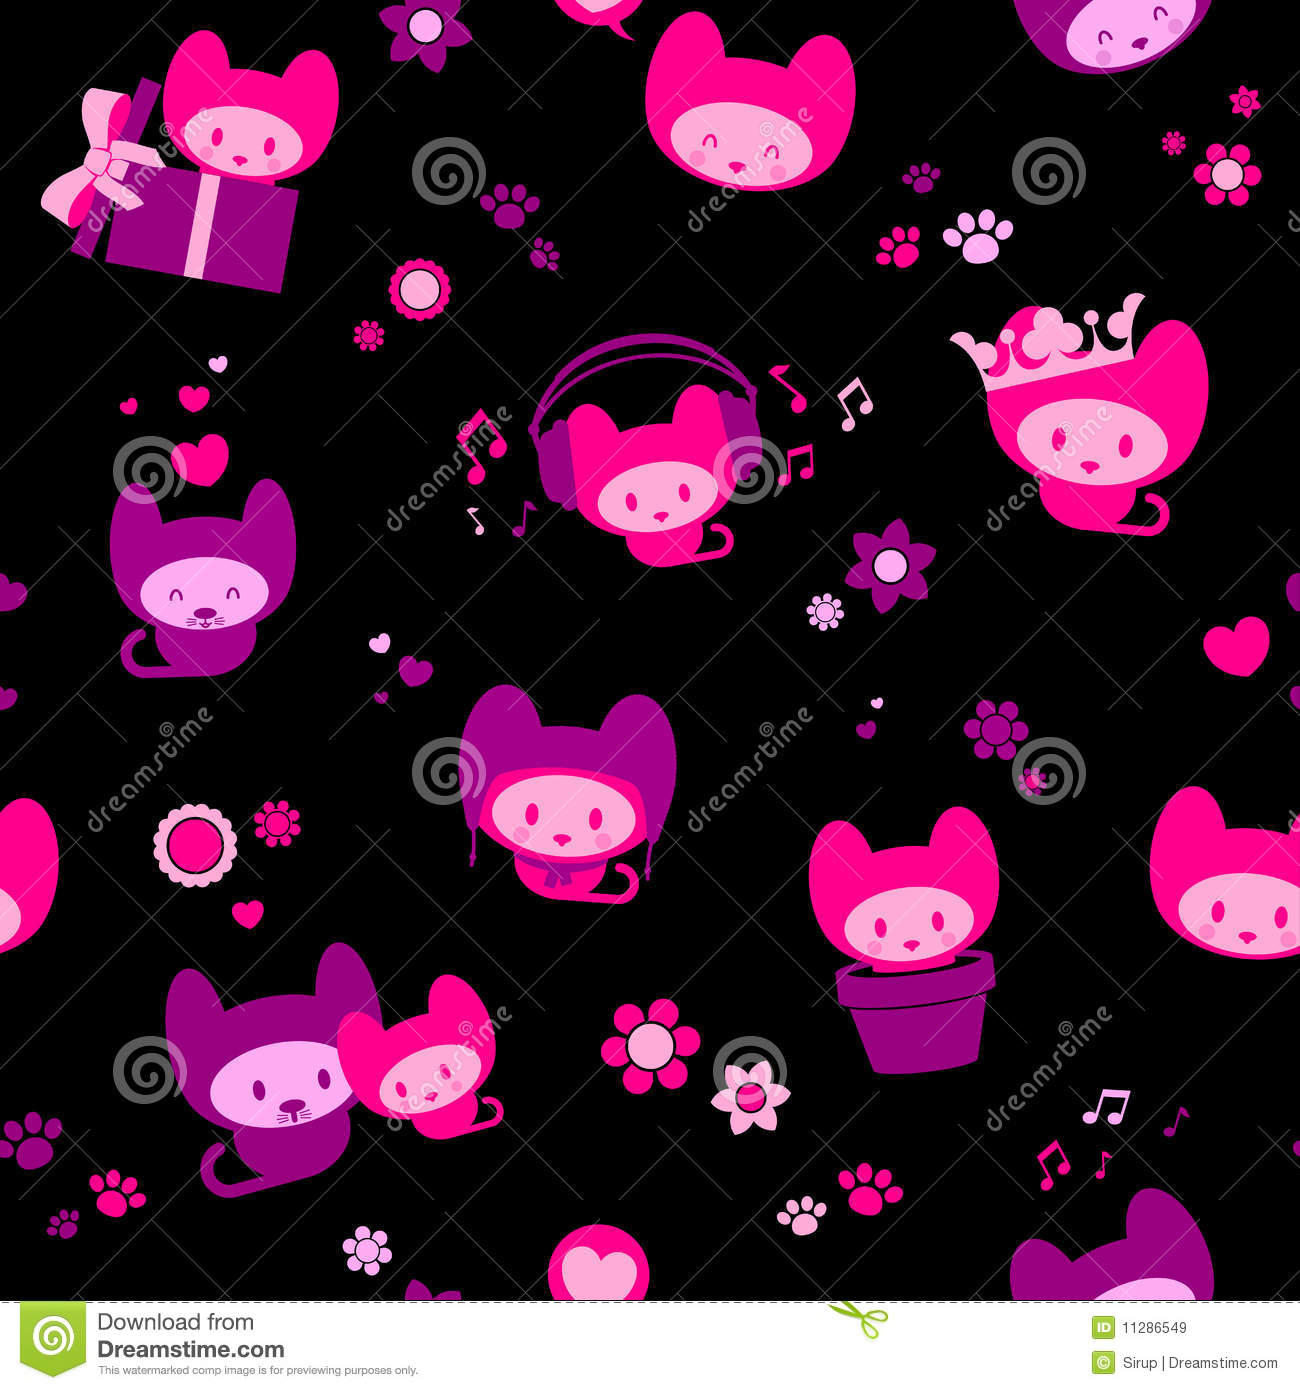 home wallpaper cute black - photo #21